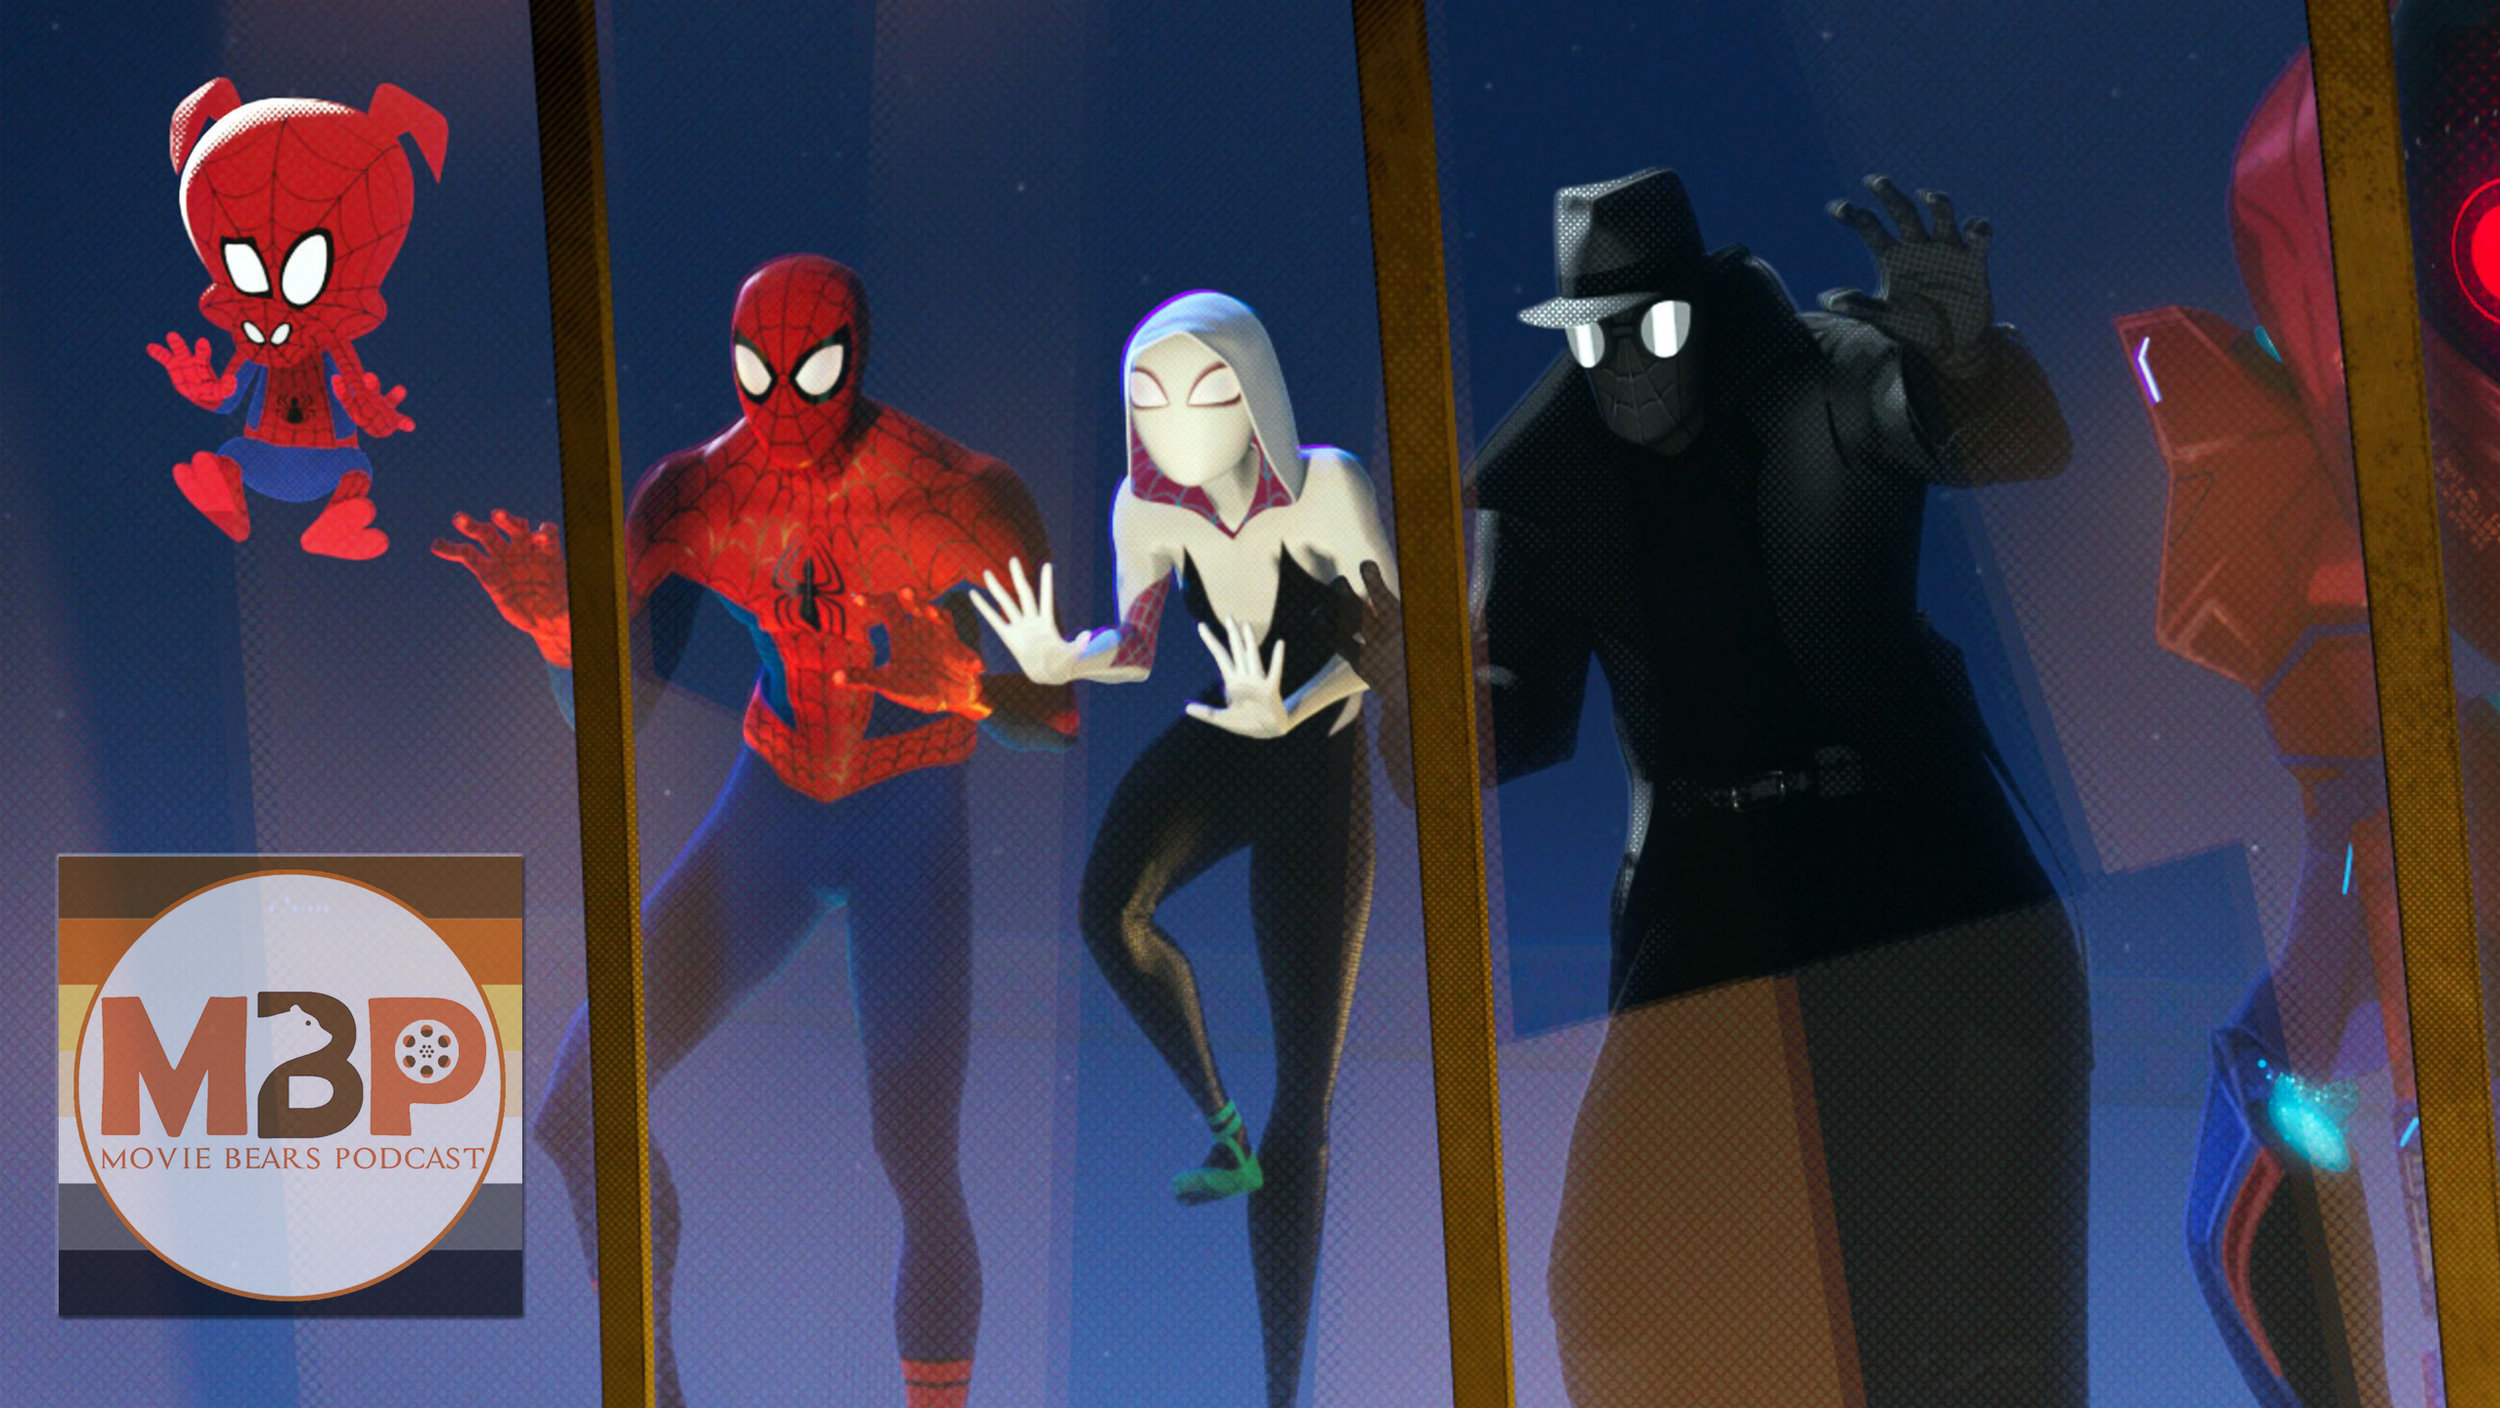 M   BP e305 - 'Spider-Man: Into the Spider-verse' (12/18/18)    On this episode, we review & discuss 'Spider-Man: Into The Spider-Verse', the new animated movie in which Miles Morales finds out that he isn't the only person with spider powers. Does this new spidey flick have us flipping and thwipping? Or is this one origin story too many for everyone's favorite wall crawling super hero? Have a listen to our discussion to hear what we think.